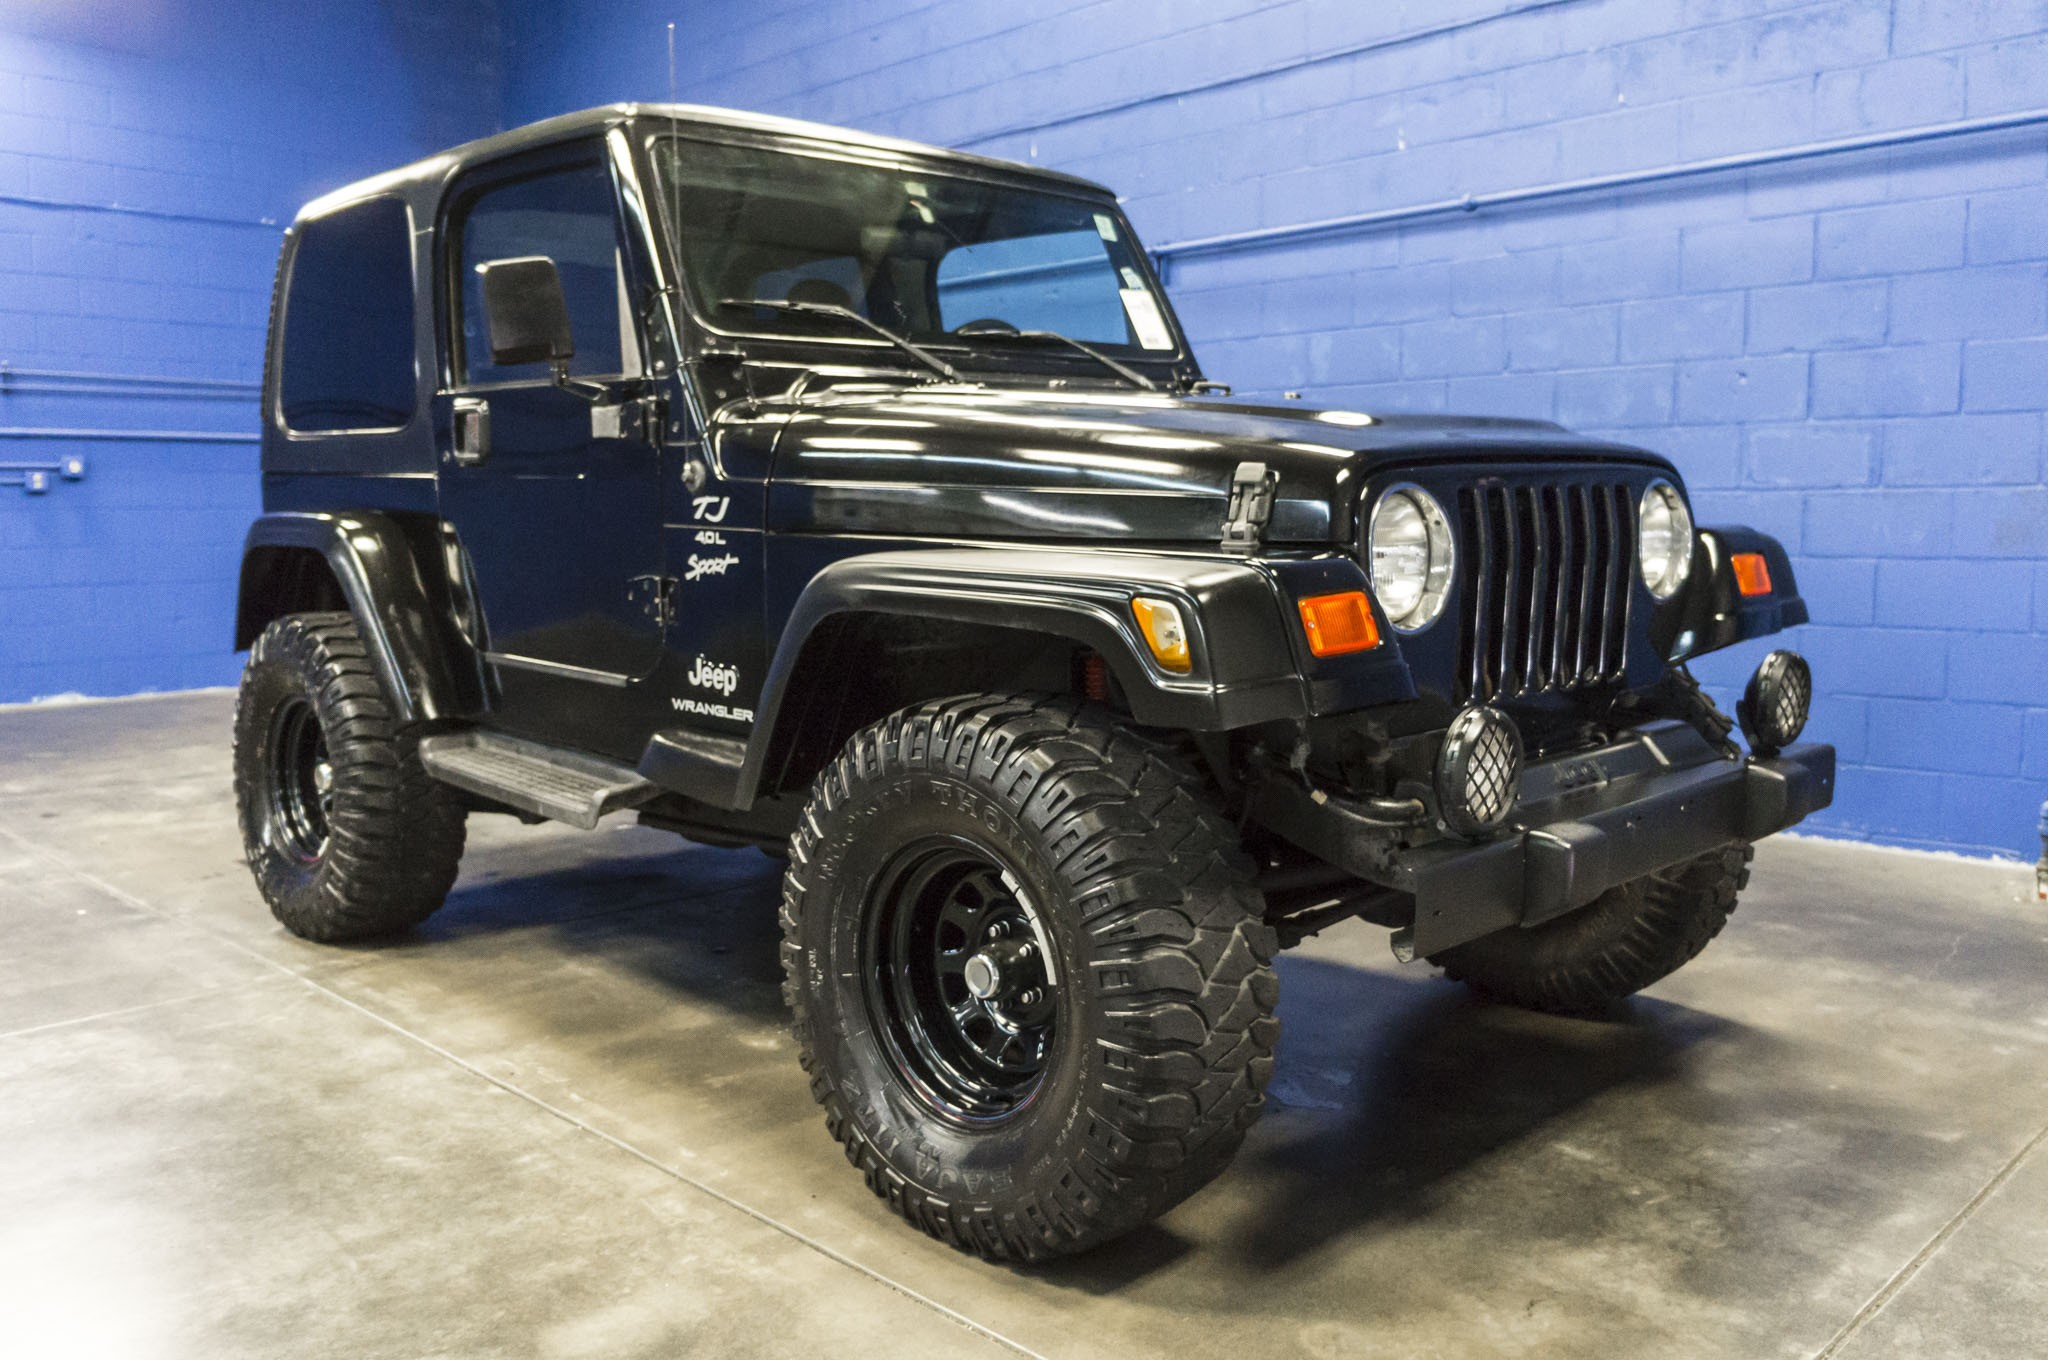 view reconstrctd online cert on wrangler for title jeep coll copart boston auctions in lot sale of white left auto ma en south carfinder